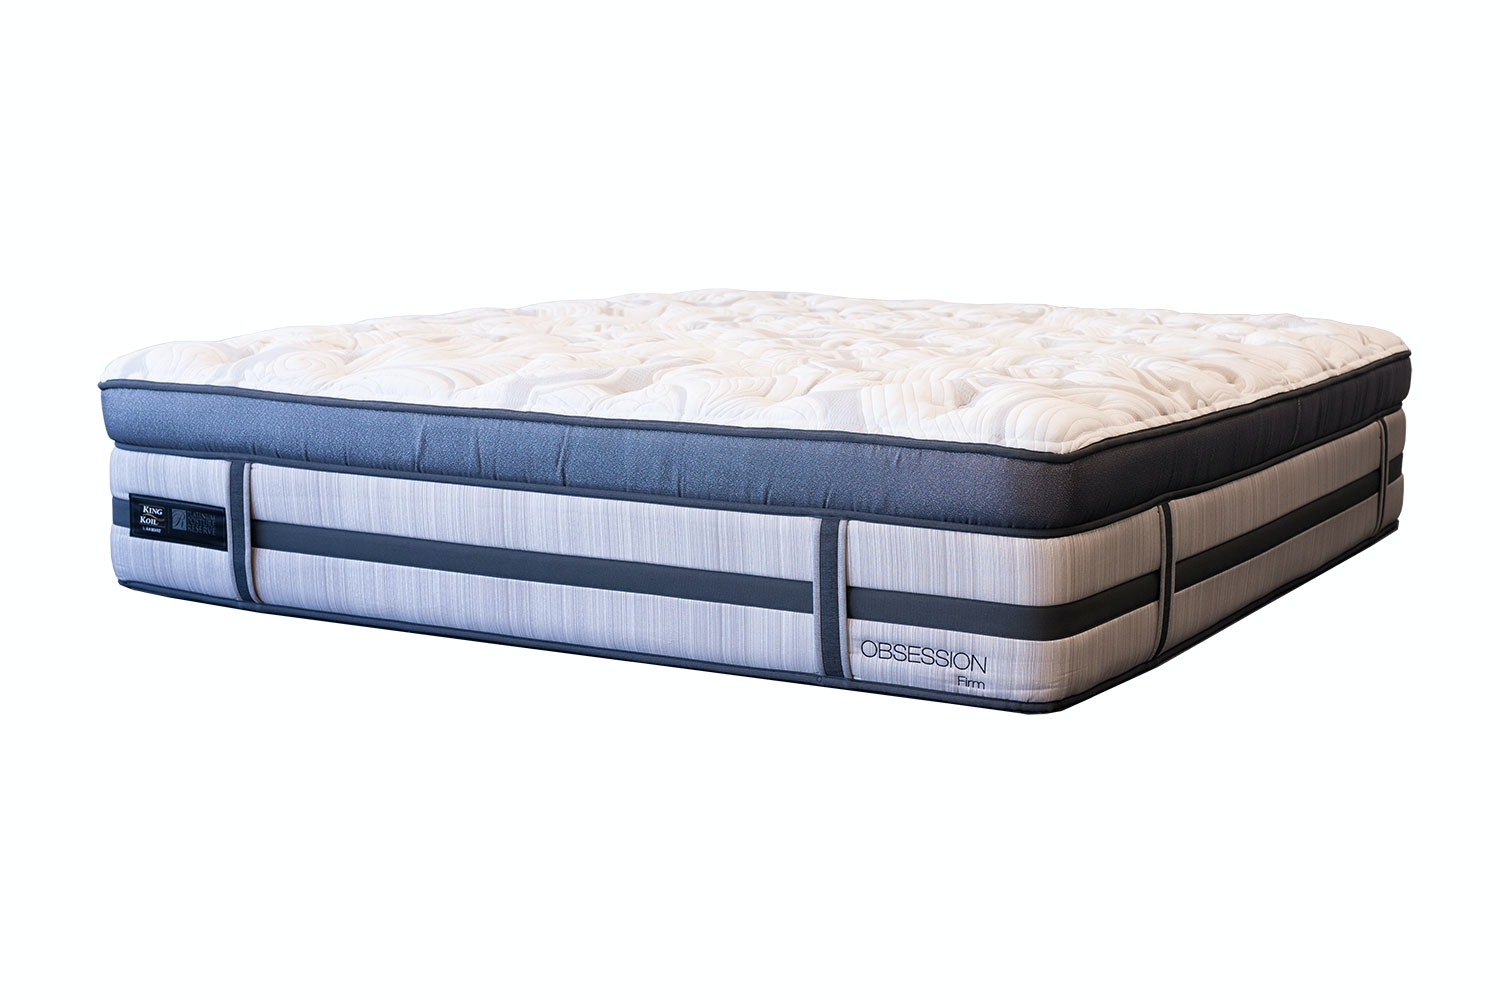 Obsession Firm Queen Mattress by King Koil